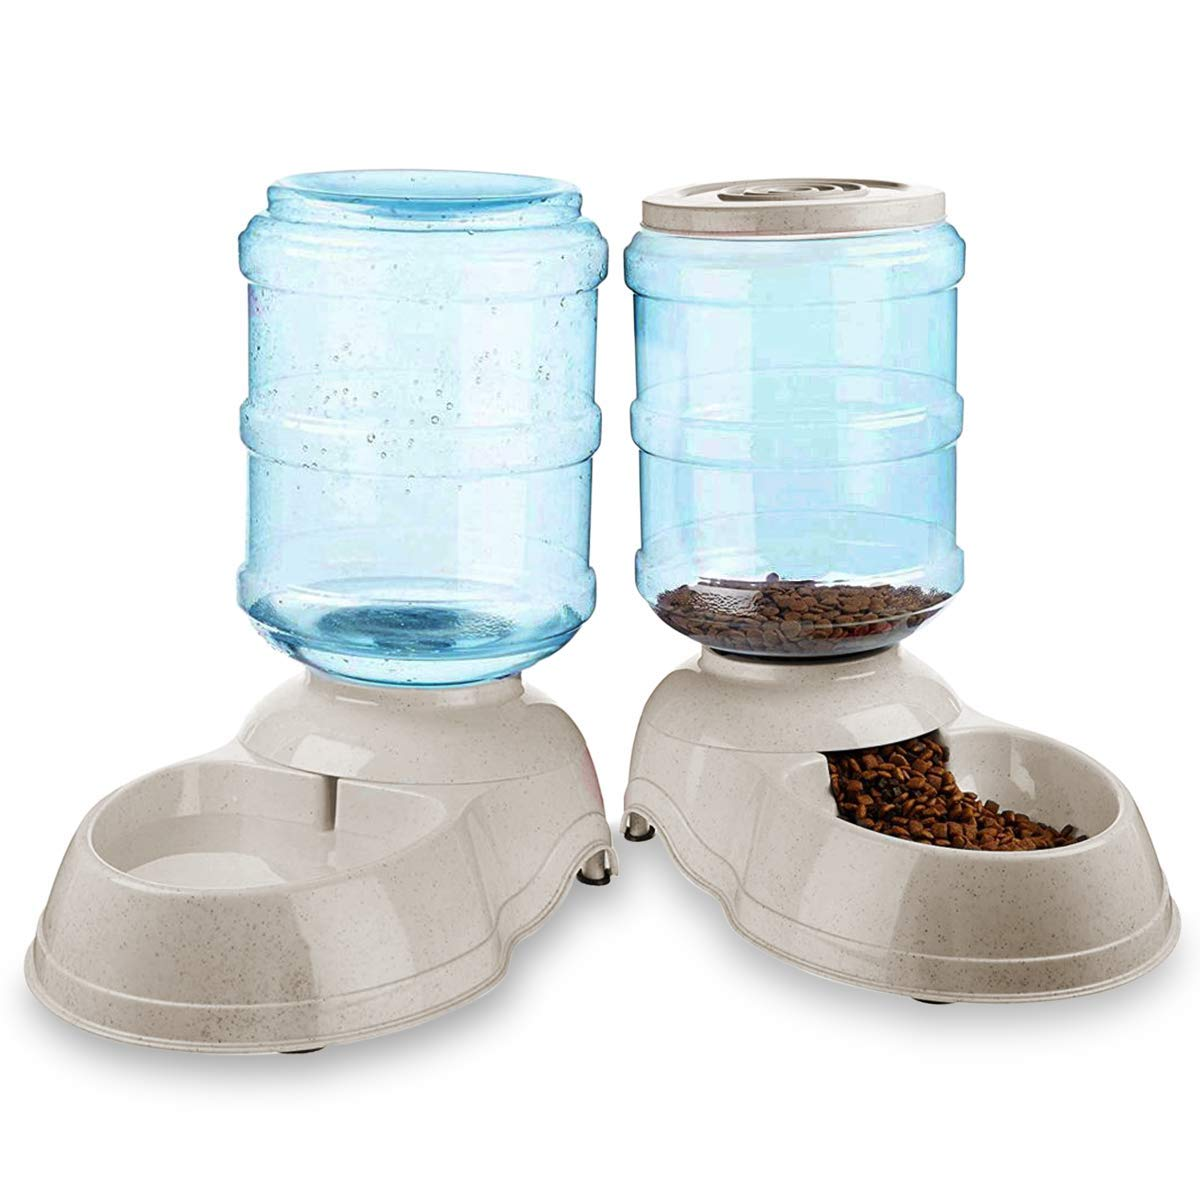 Zone Tech Self-Dispensing Pet Feeder and Water Dispenser - Premium Quality Durable Automatic Self-Dispensing Gravity 1 Gallon Pet Feeder and 3.7 Liters Pet Waterer